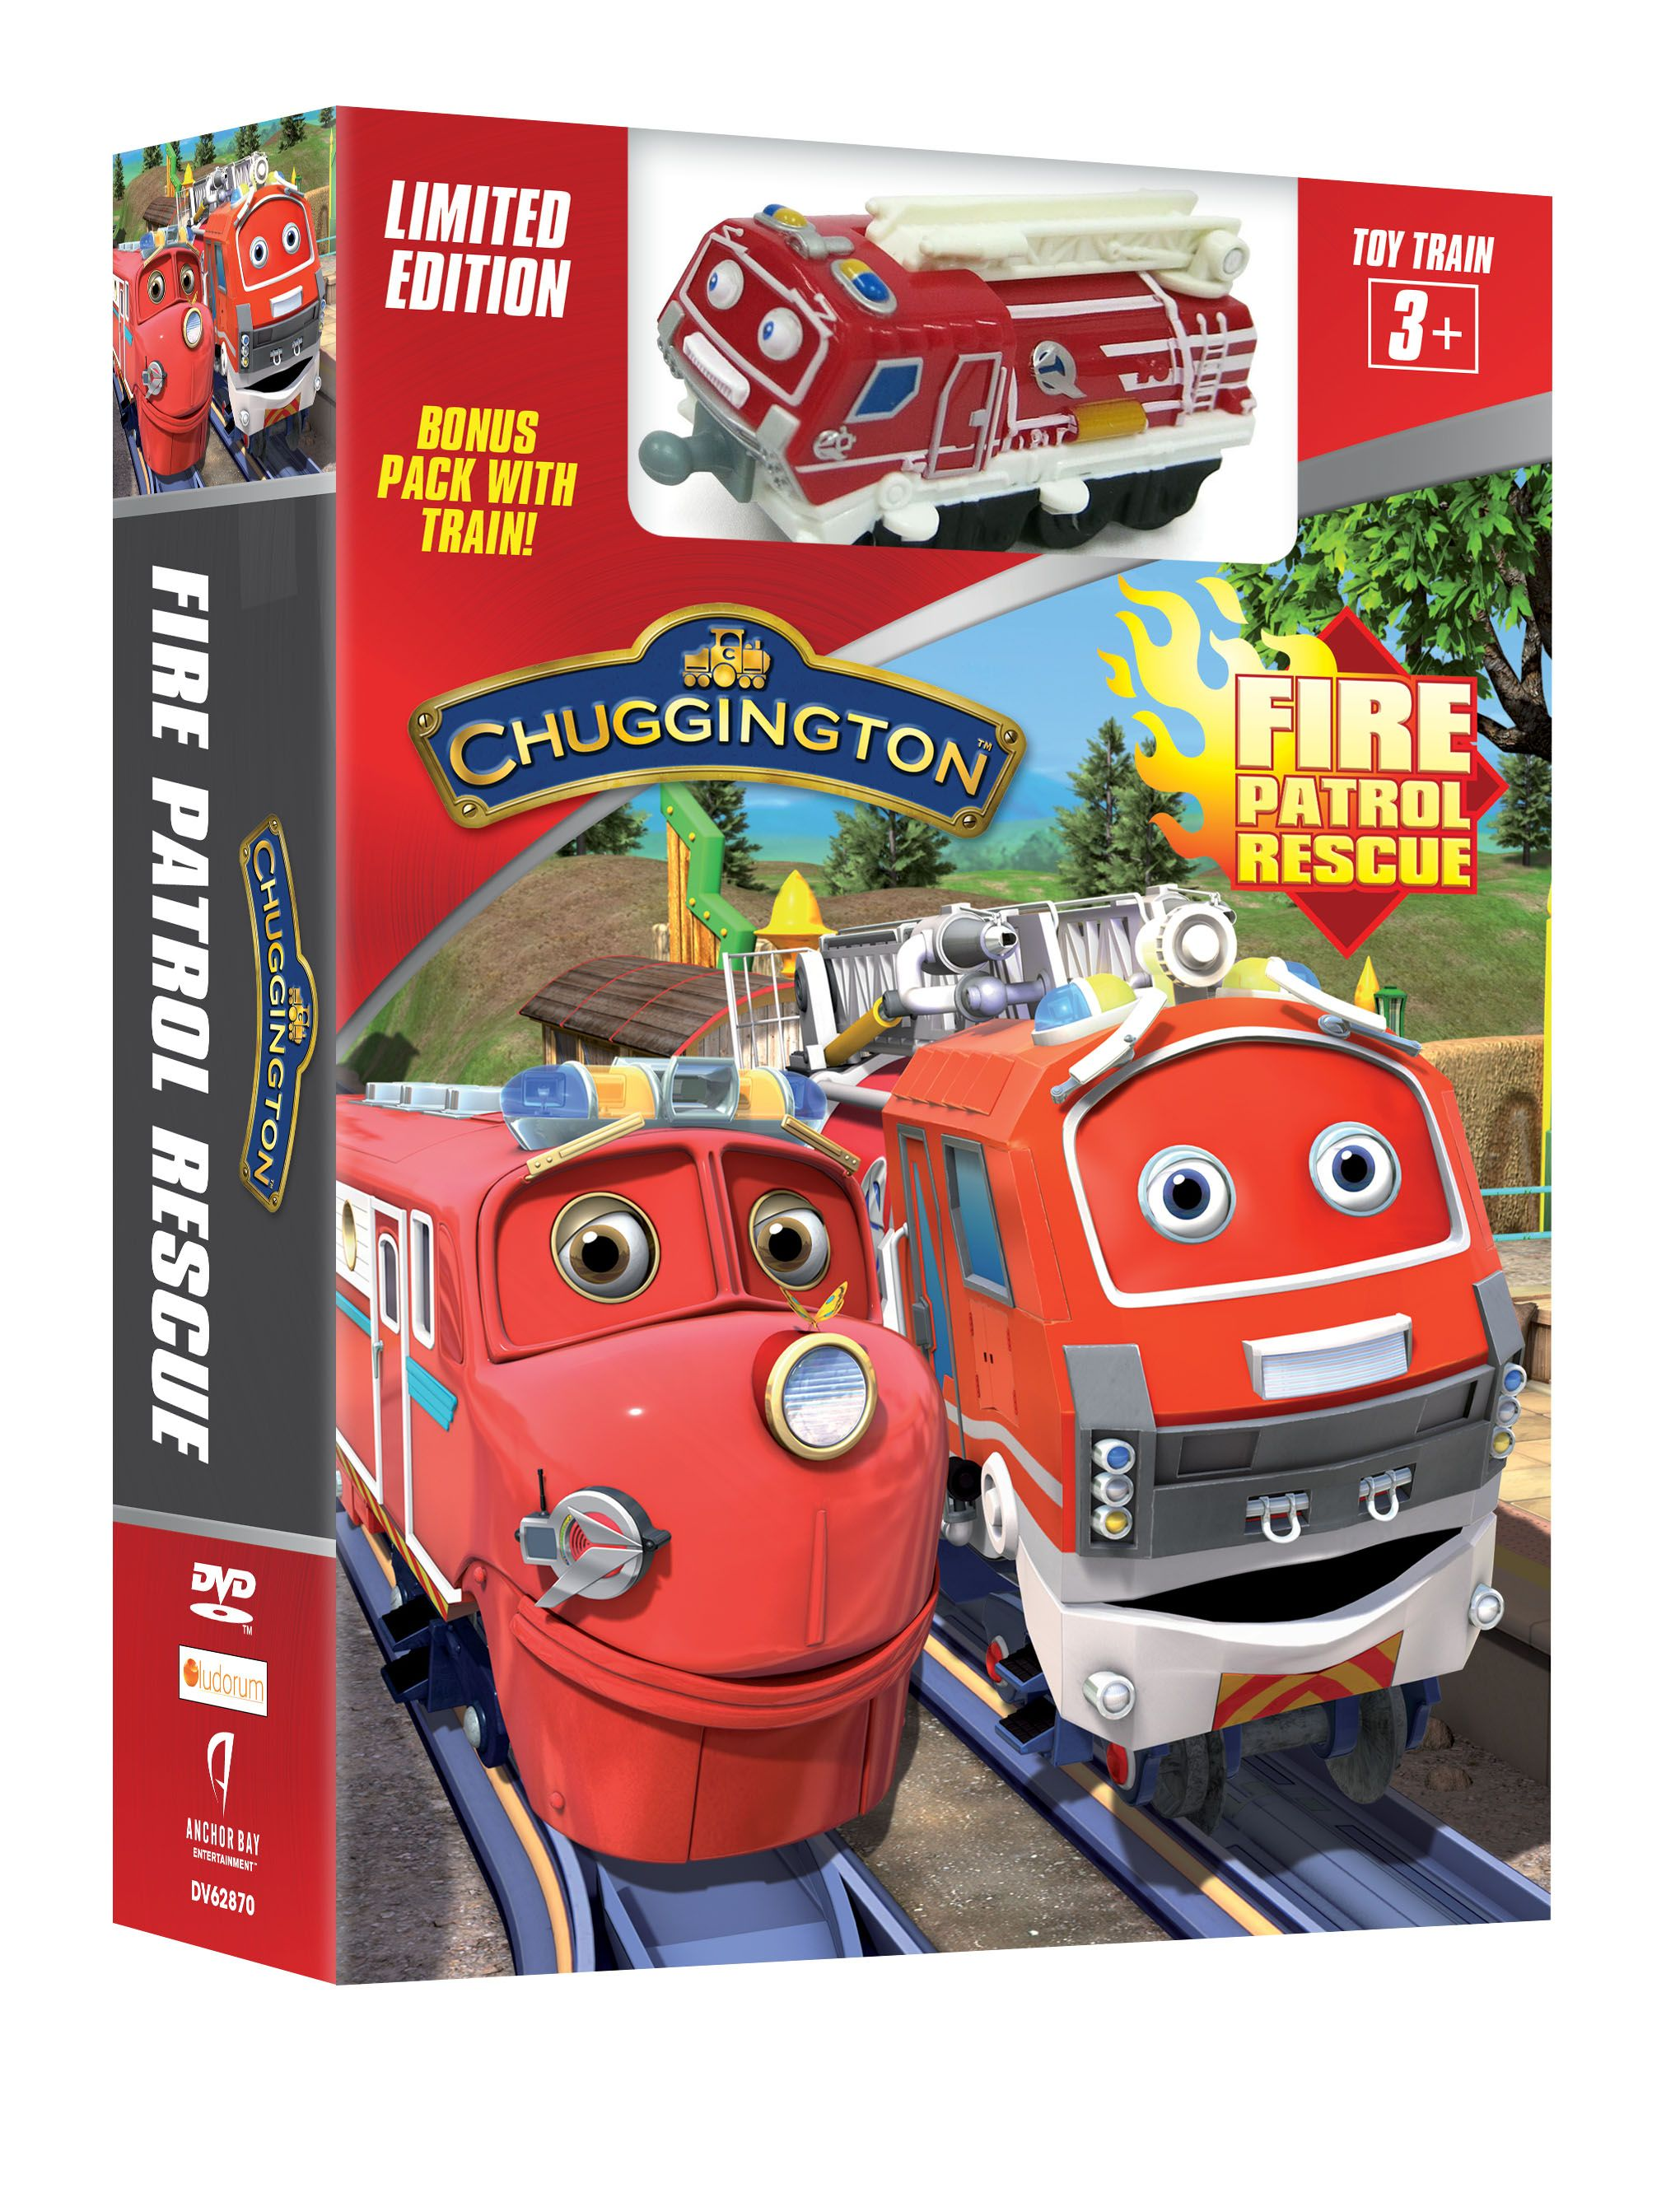 Today is Chuggington Fire Patrol Rescue Day! Get Fire Safety Tips + ...